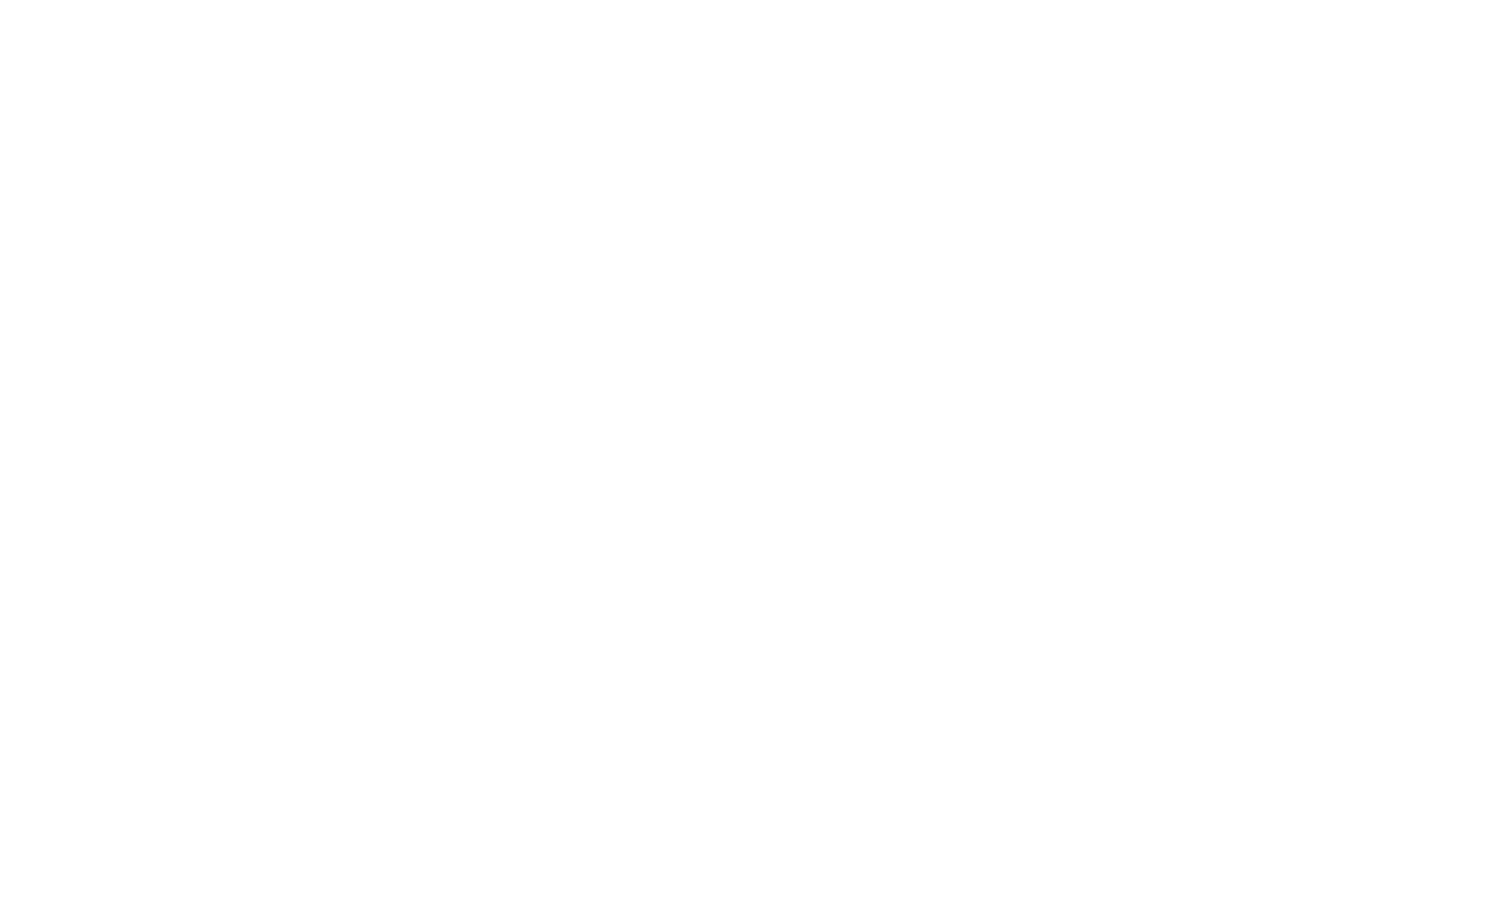 Rifle Club Hotel, Williamstown, VIC